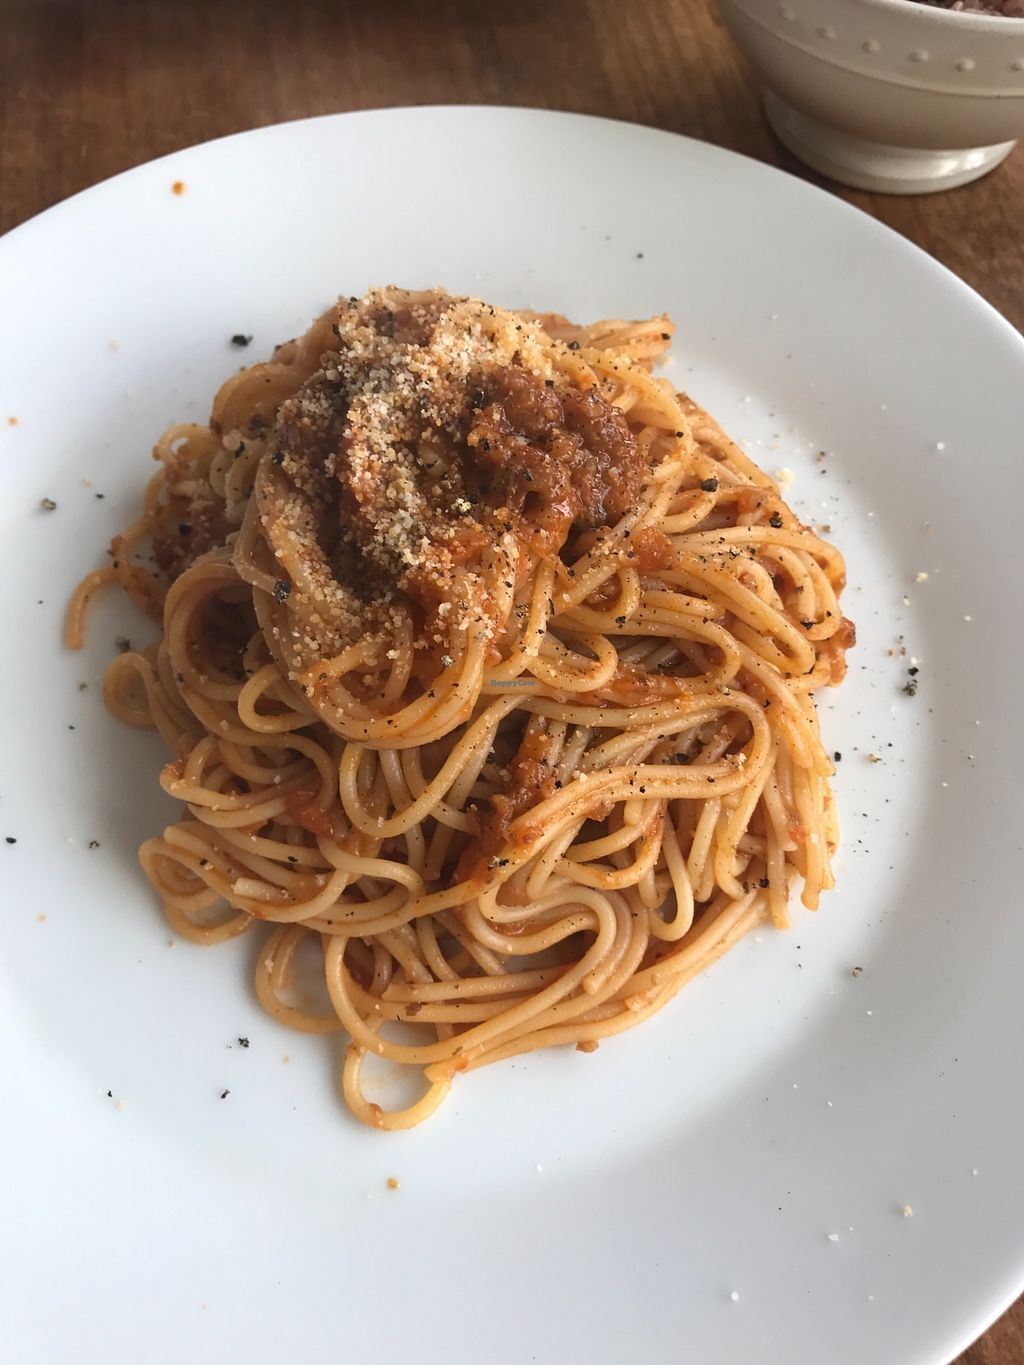 "Photo of Slow Food and Wine KiboKo  by <a href=""/members/profile/FlyNg"">FlyNg</a> <br/>Today special pasta <br/> March 24, 2018  - <a href='/contact/abuse/image/67128/375321'>Report</a>"